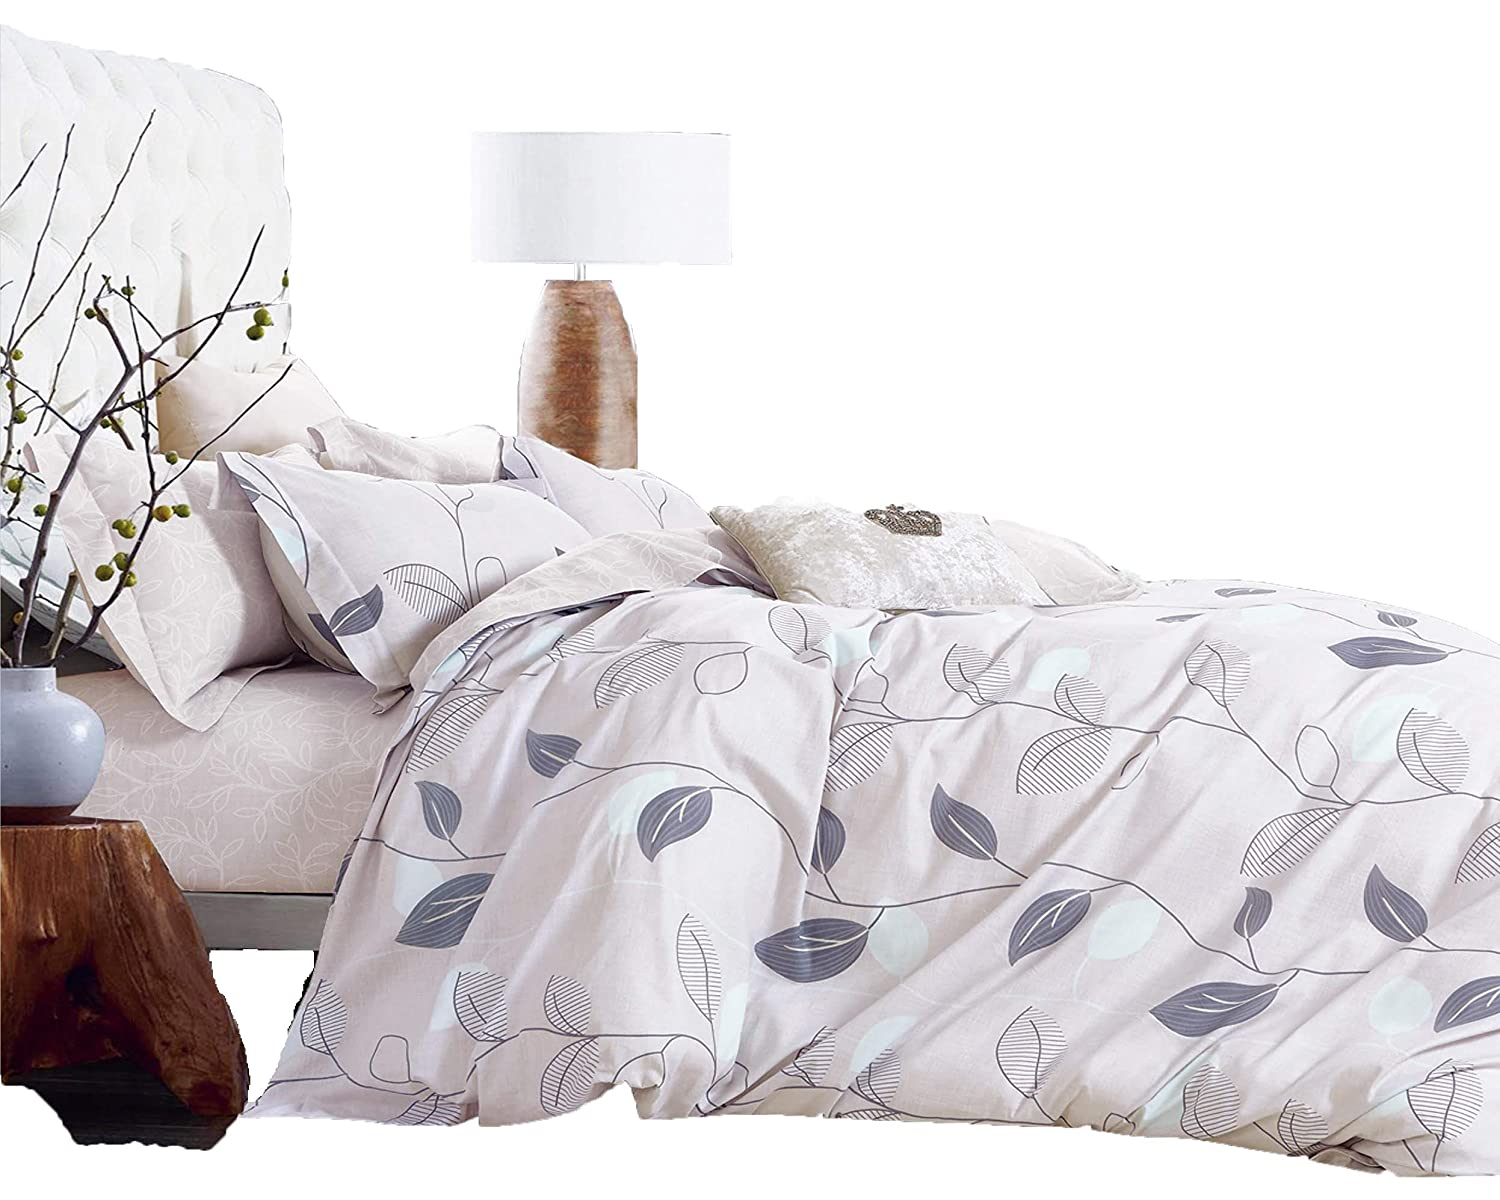 Swanson Beddings Elegant Leaves 3-Piece 100% Cotton Bedding Set: Duvet Cover and Two Pillow Shams (Queen)